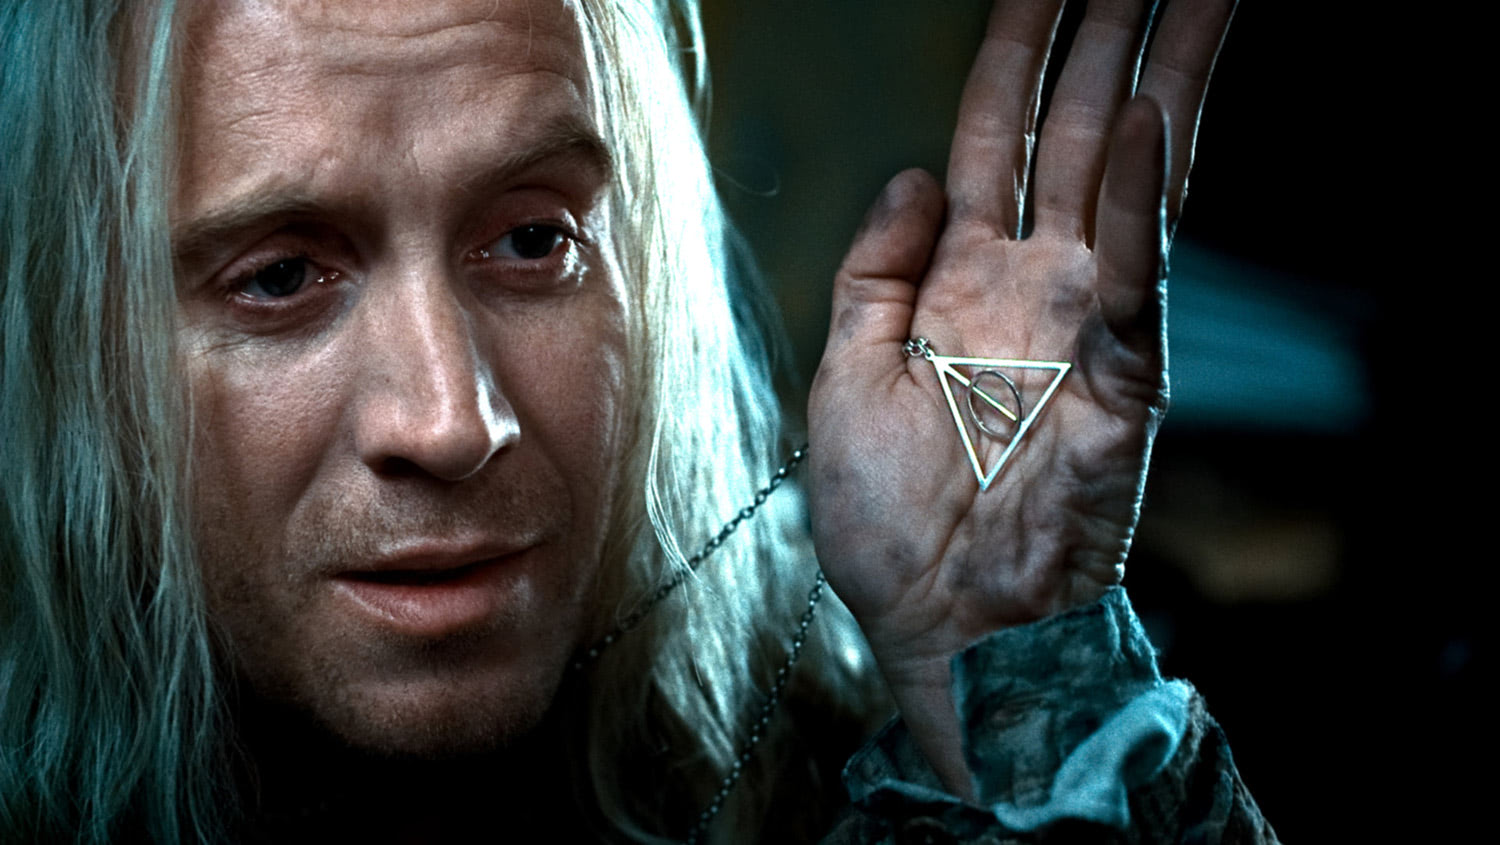 Xenophilius Lovegood with the Deathly Hallows necklace